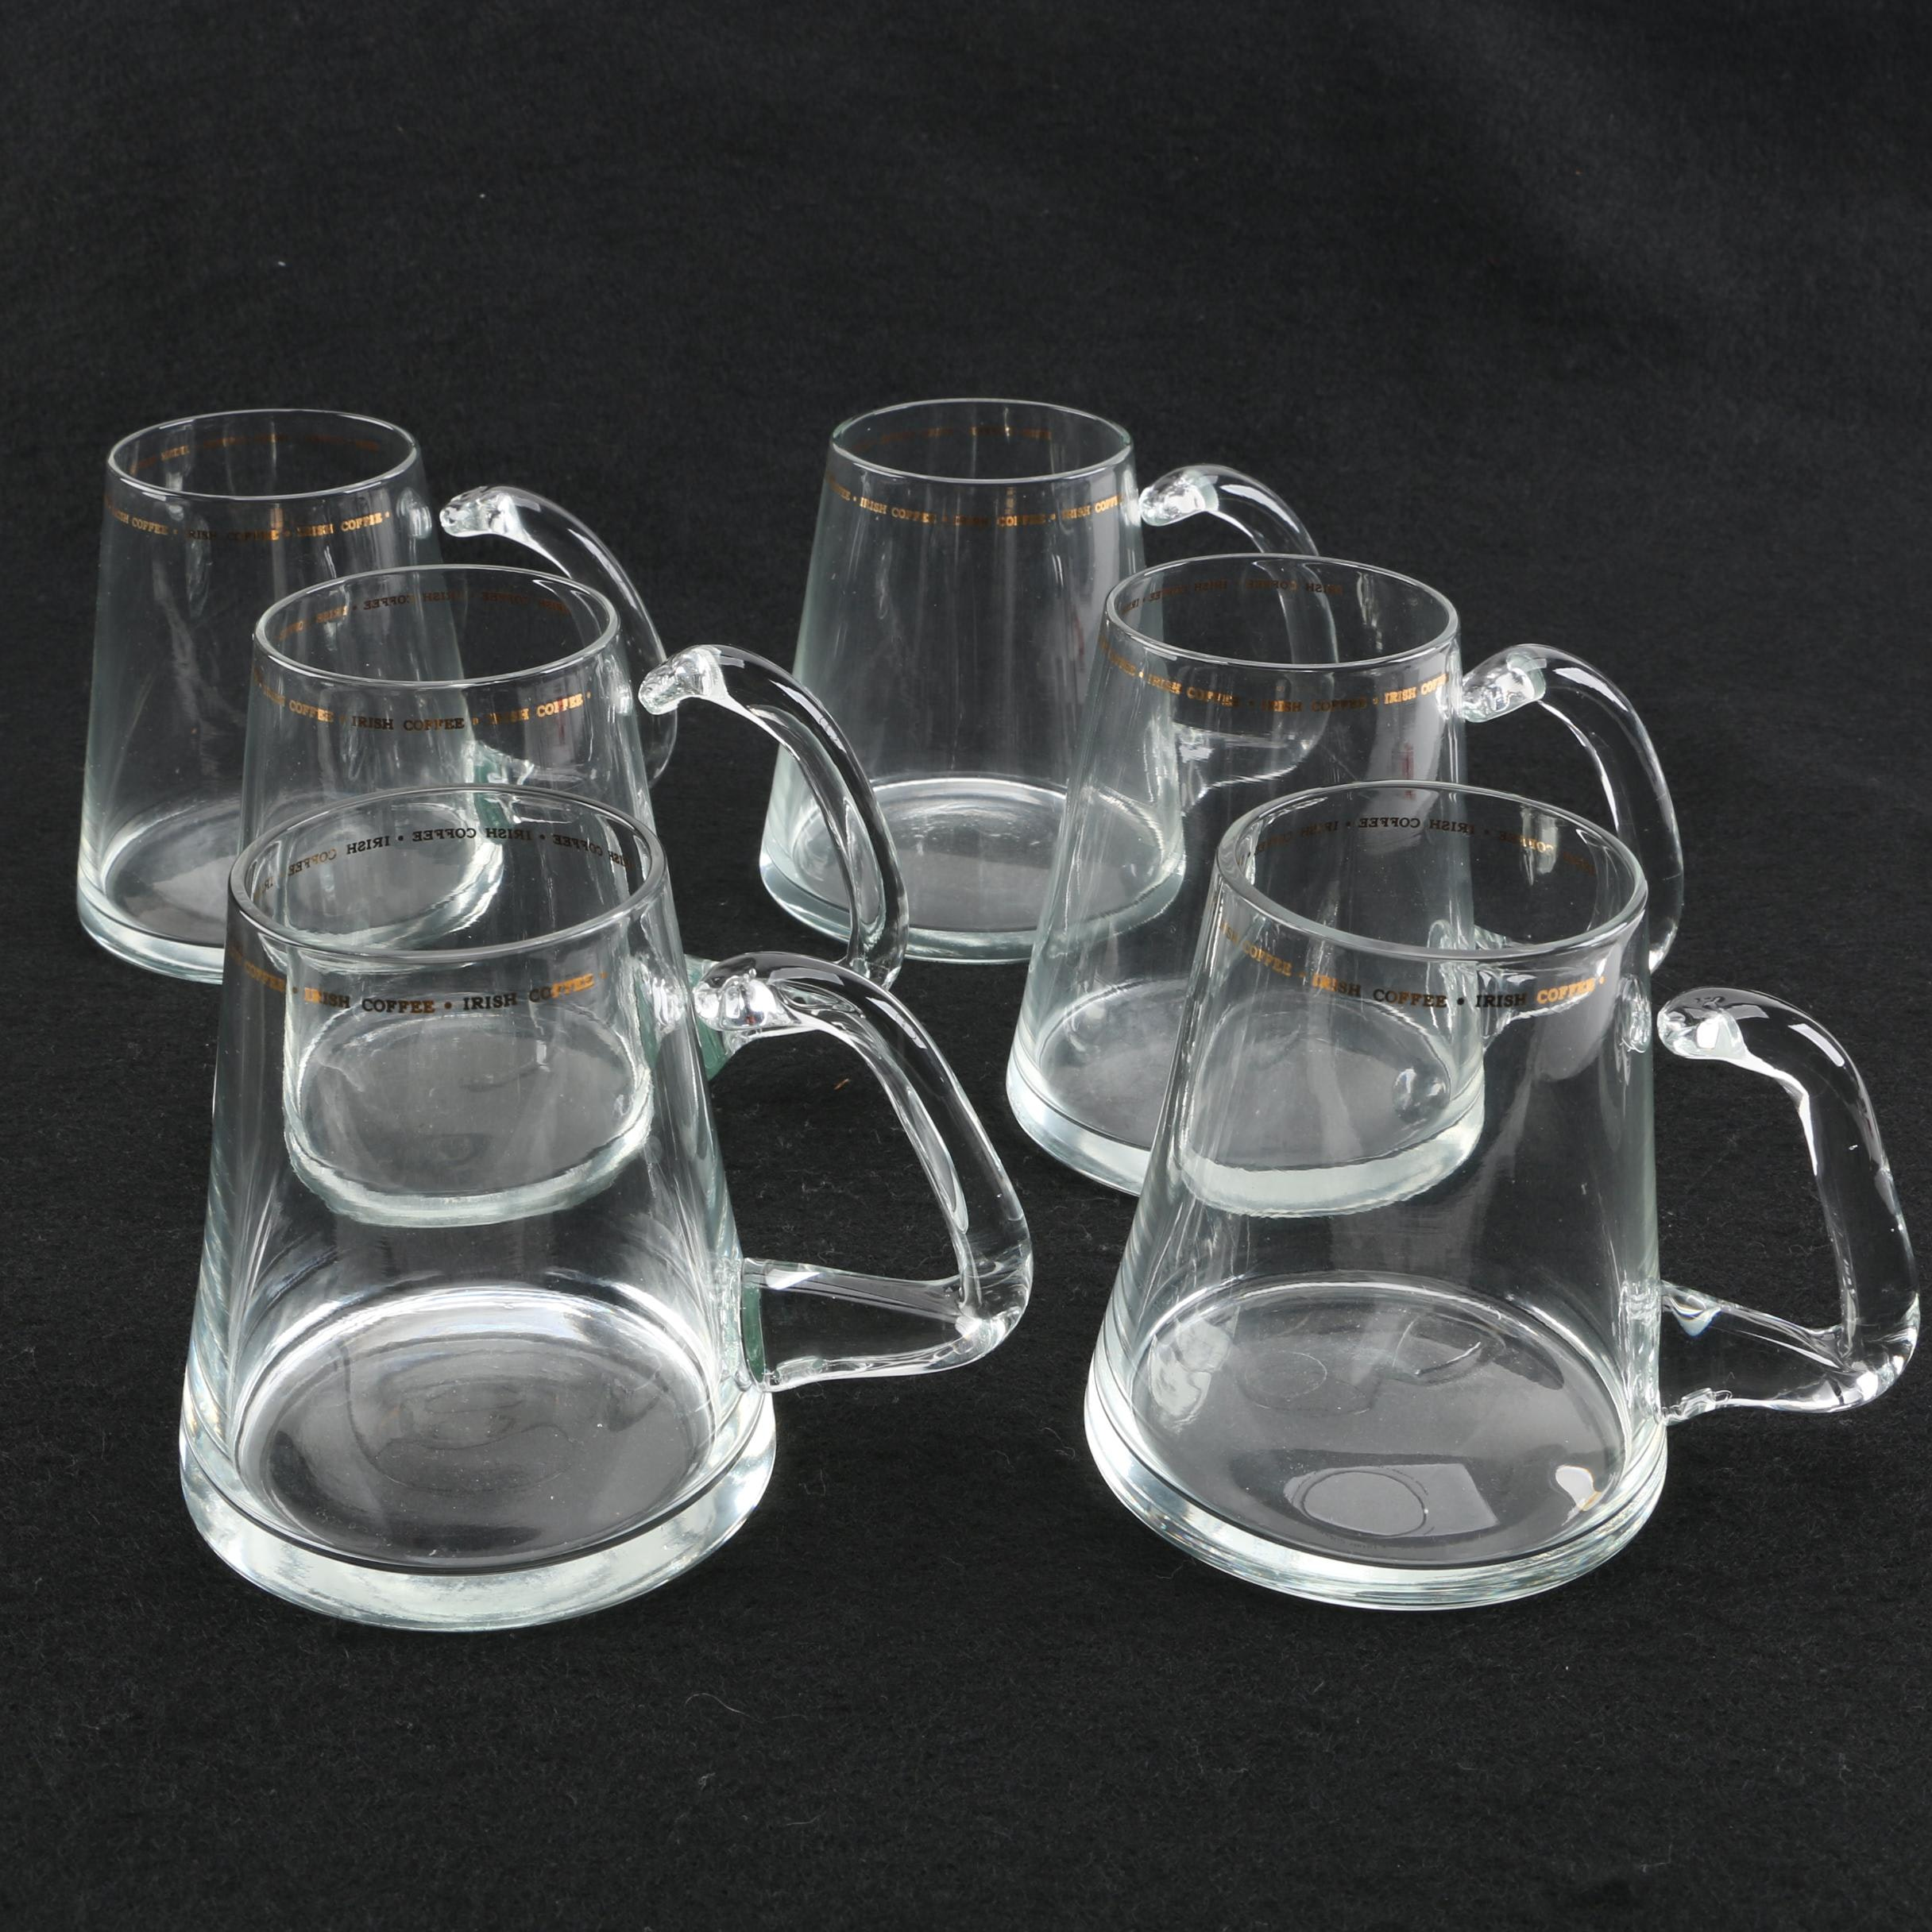 Vintage Glass Irish Coffee Mugs